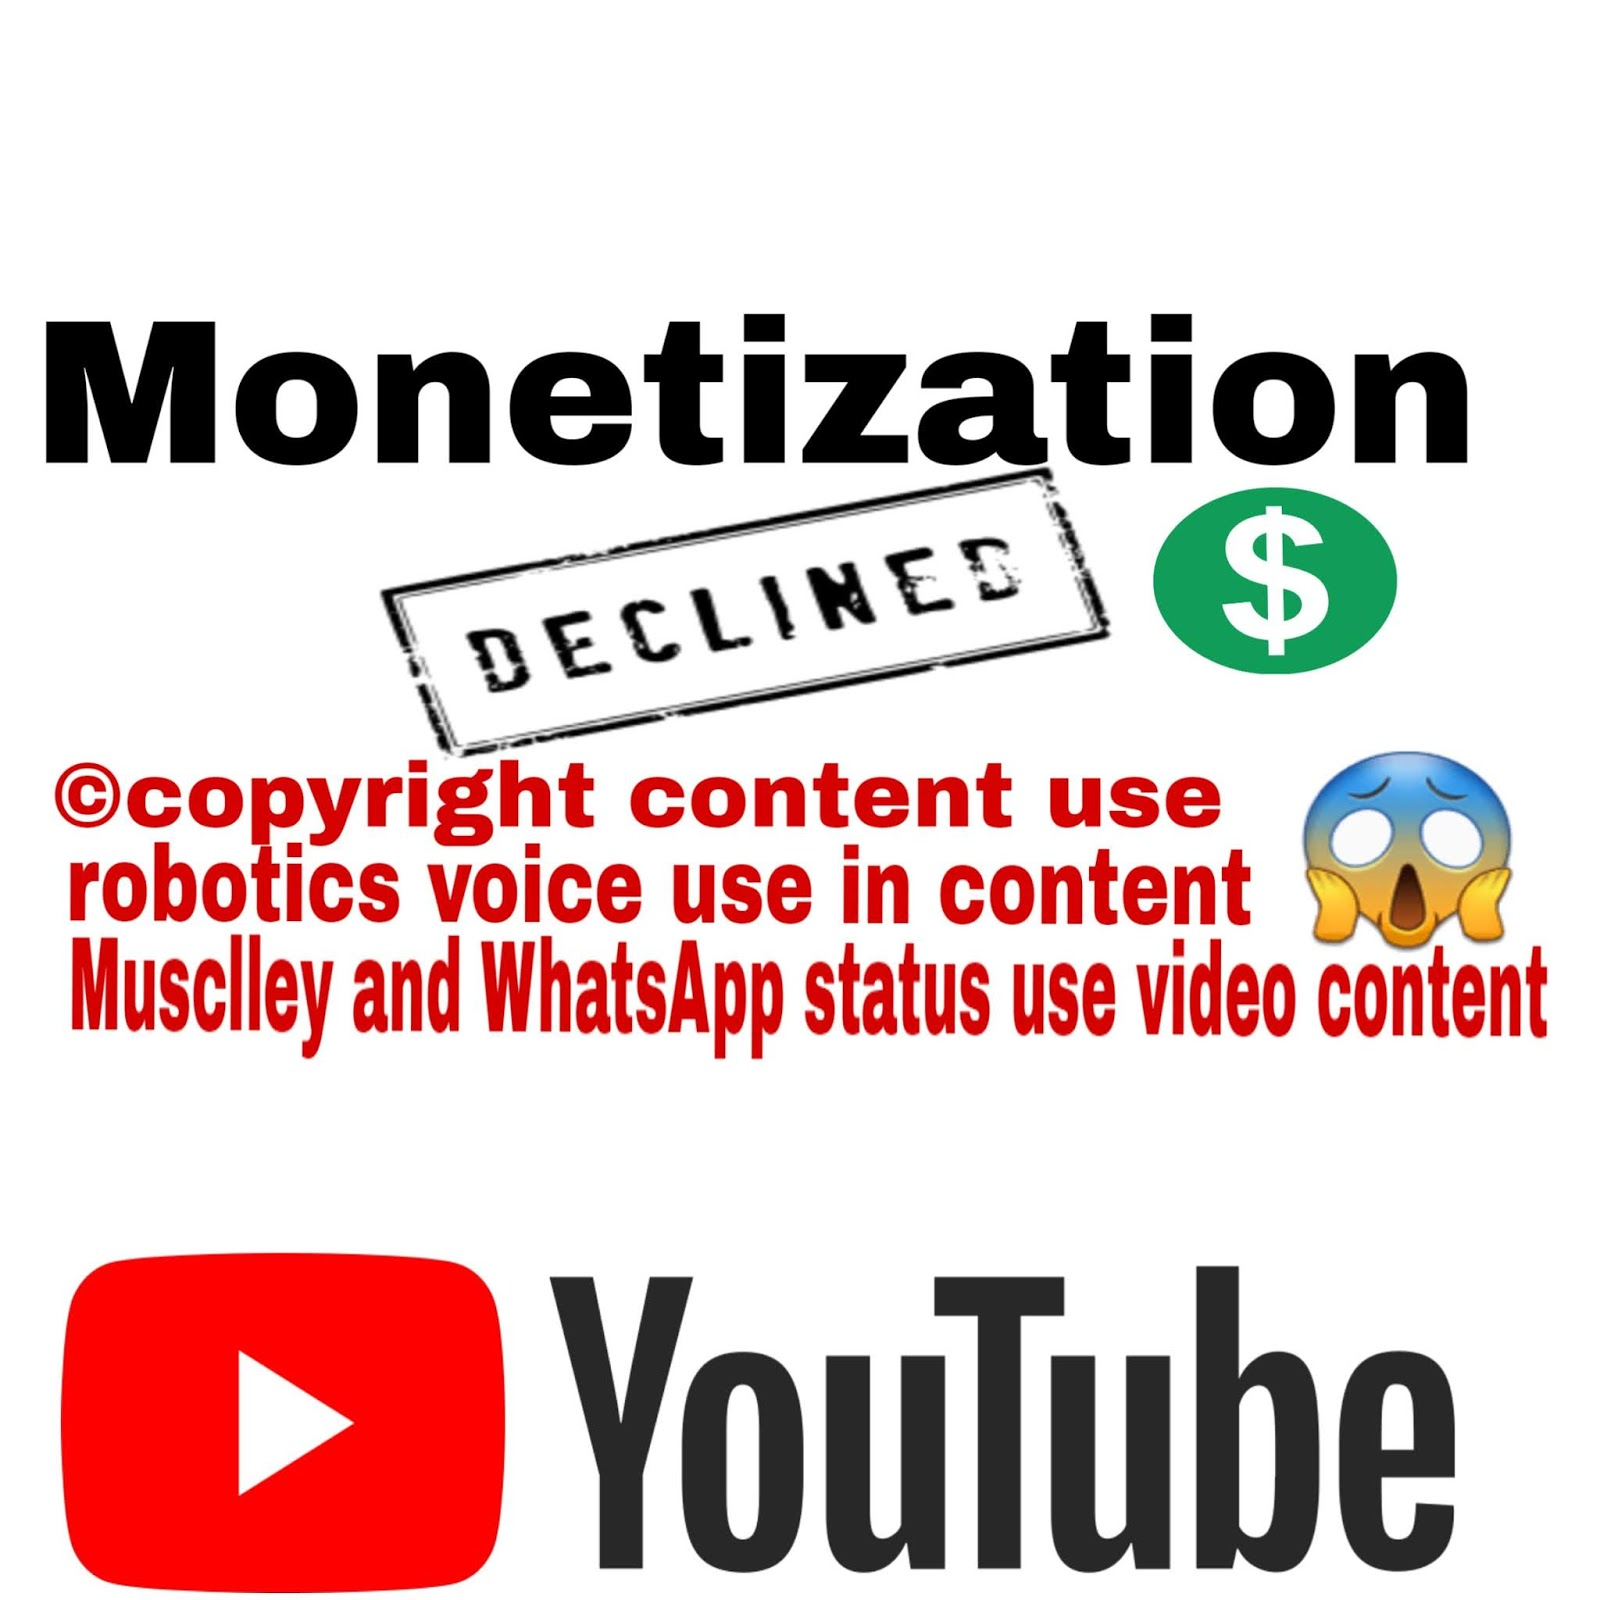 YouTube Monetization | YouTube Monetization rules 2018 - RDV